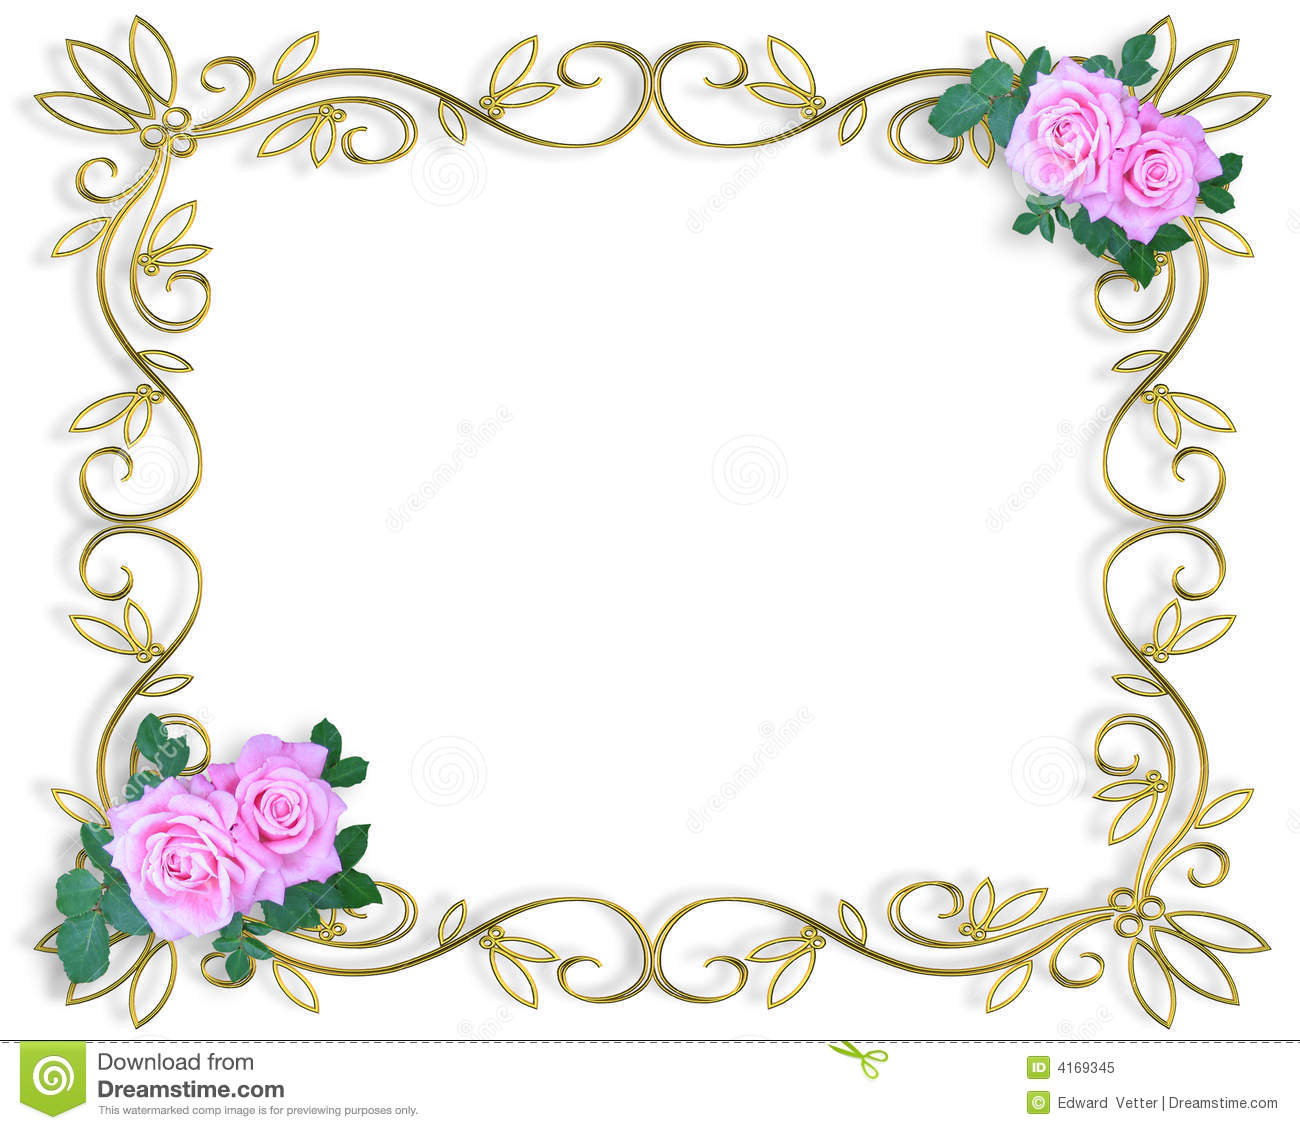 wedding borders and frames free download - Juve.cenitdelacabrera.co